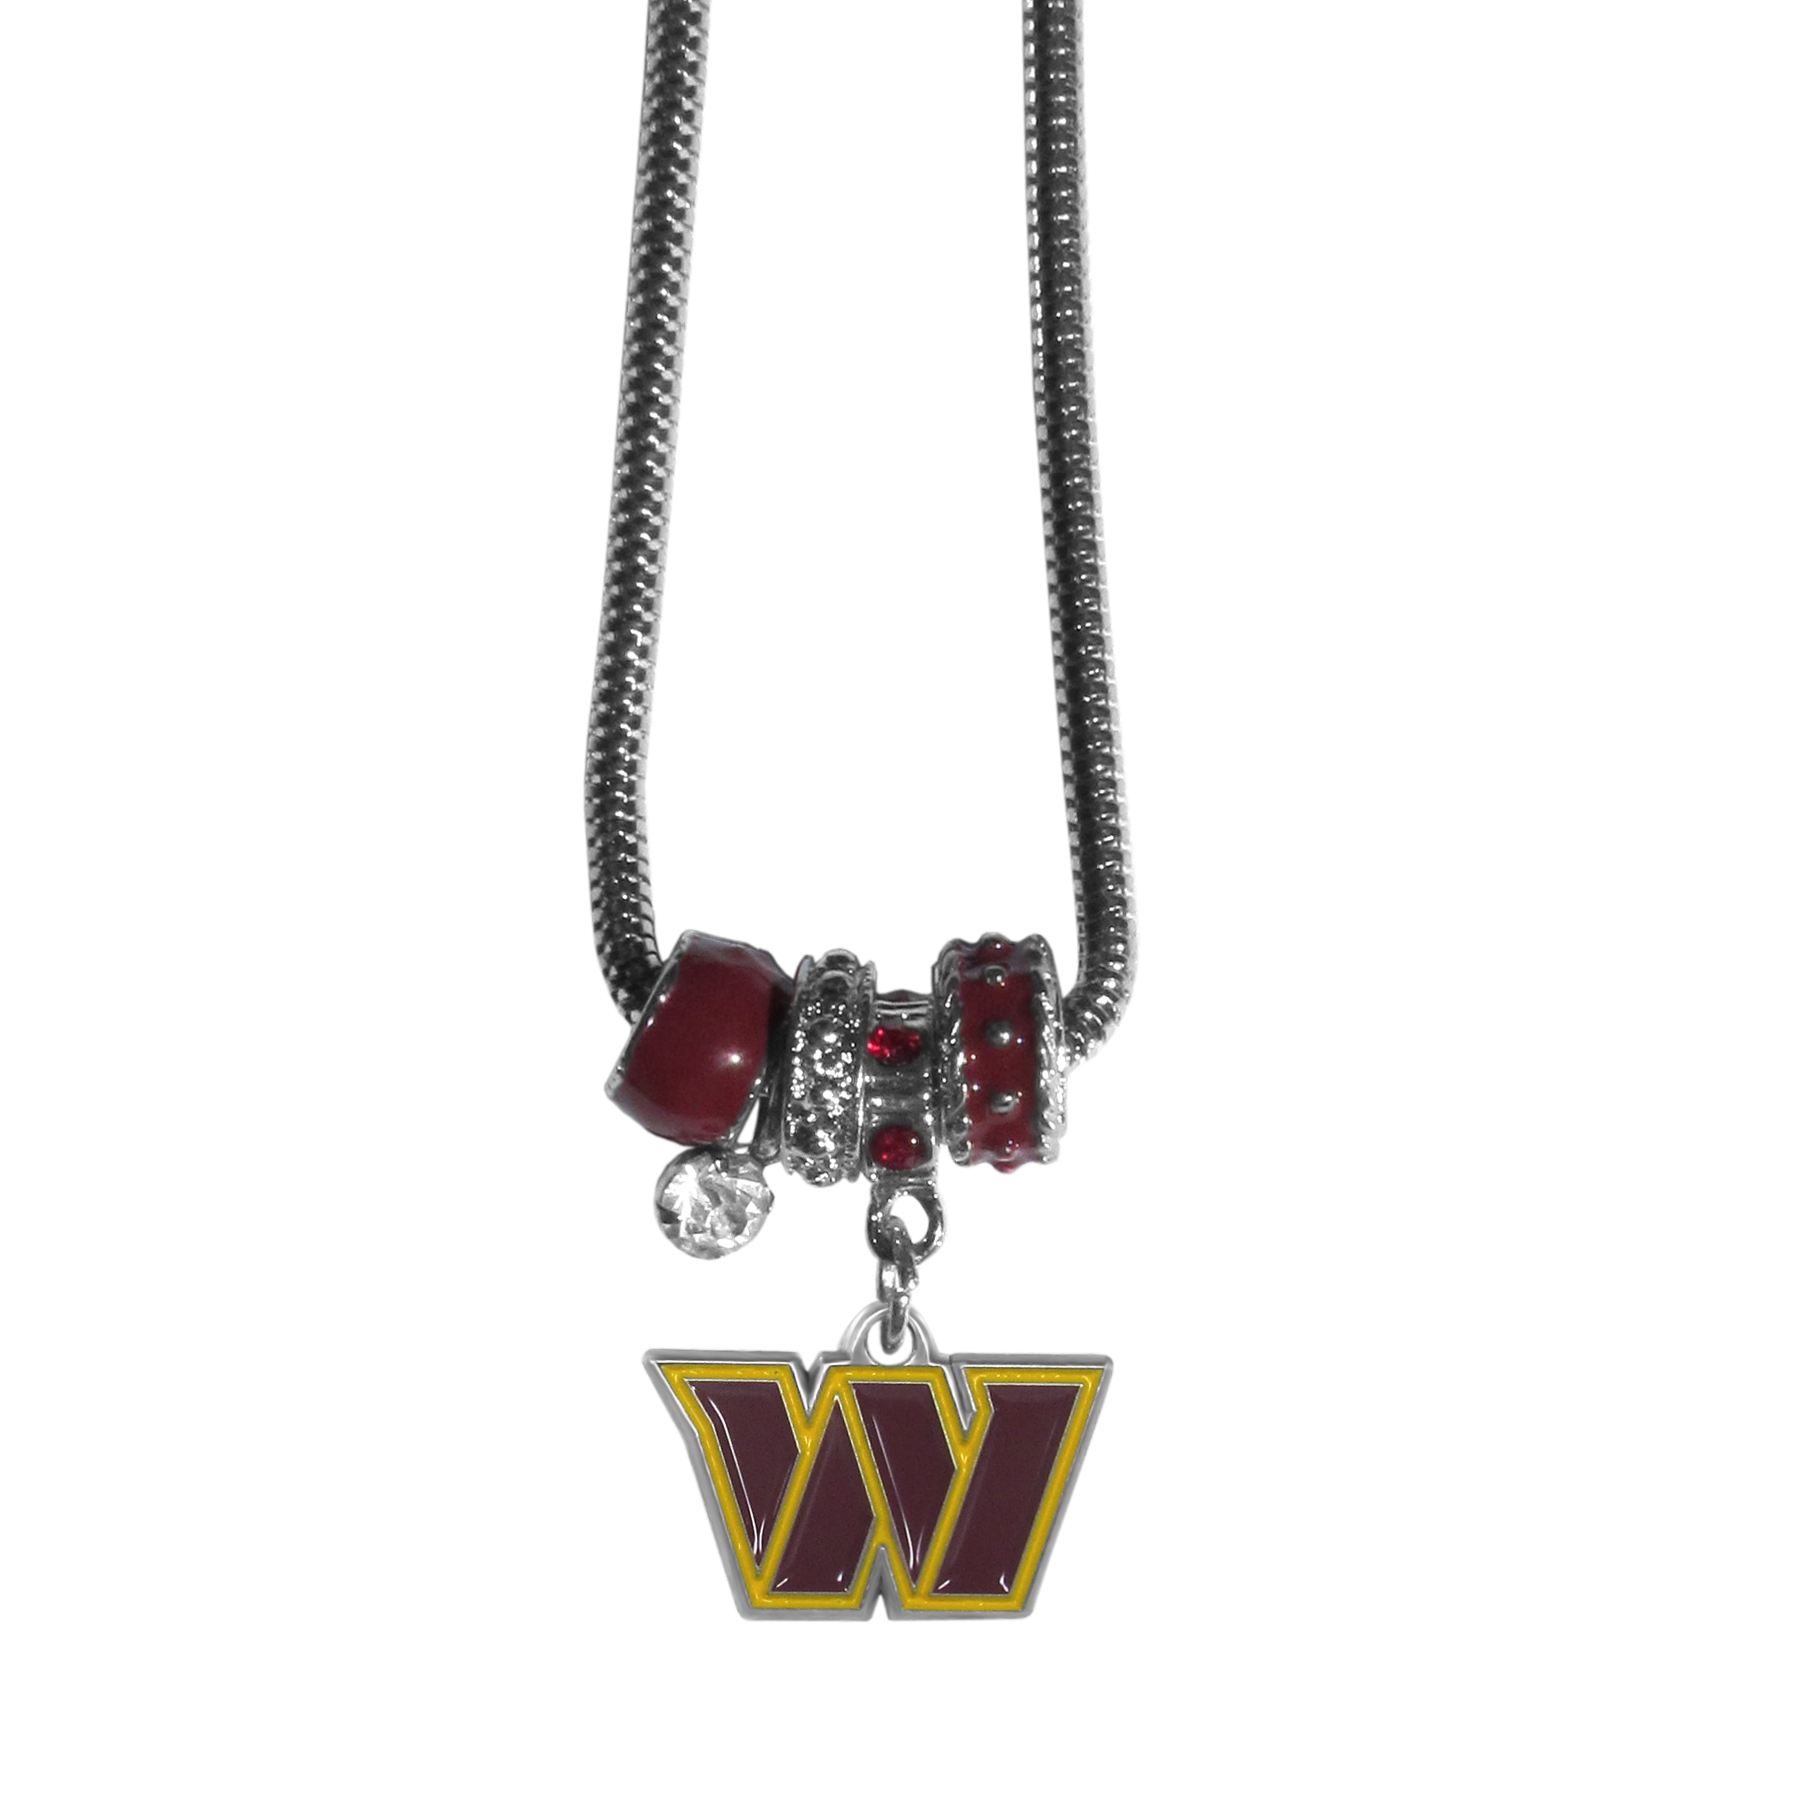 Washington Redskins Euro Bead Necklace - We have combined the wildly popular Euro style beads with your favorite team to create our Washington Redskins bead necklace. The 18 inch snake chain features 4 Euro beads with enameled team colors and rhinestone accents with a high polish, nickel free charm and rhinestone charm. Perfect way to show off your team pride.